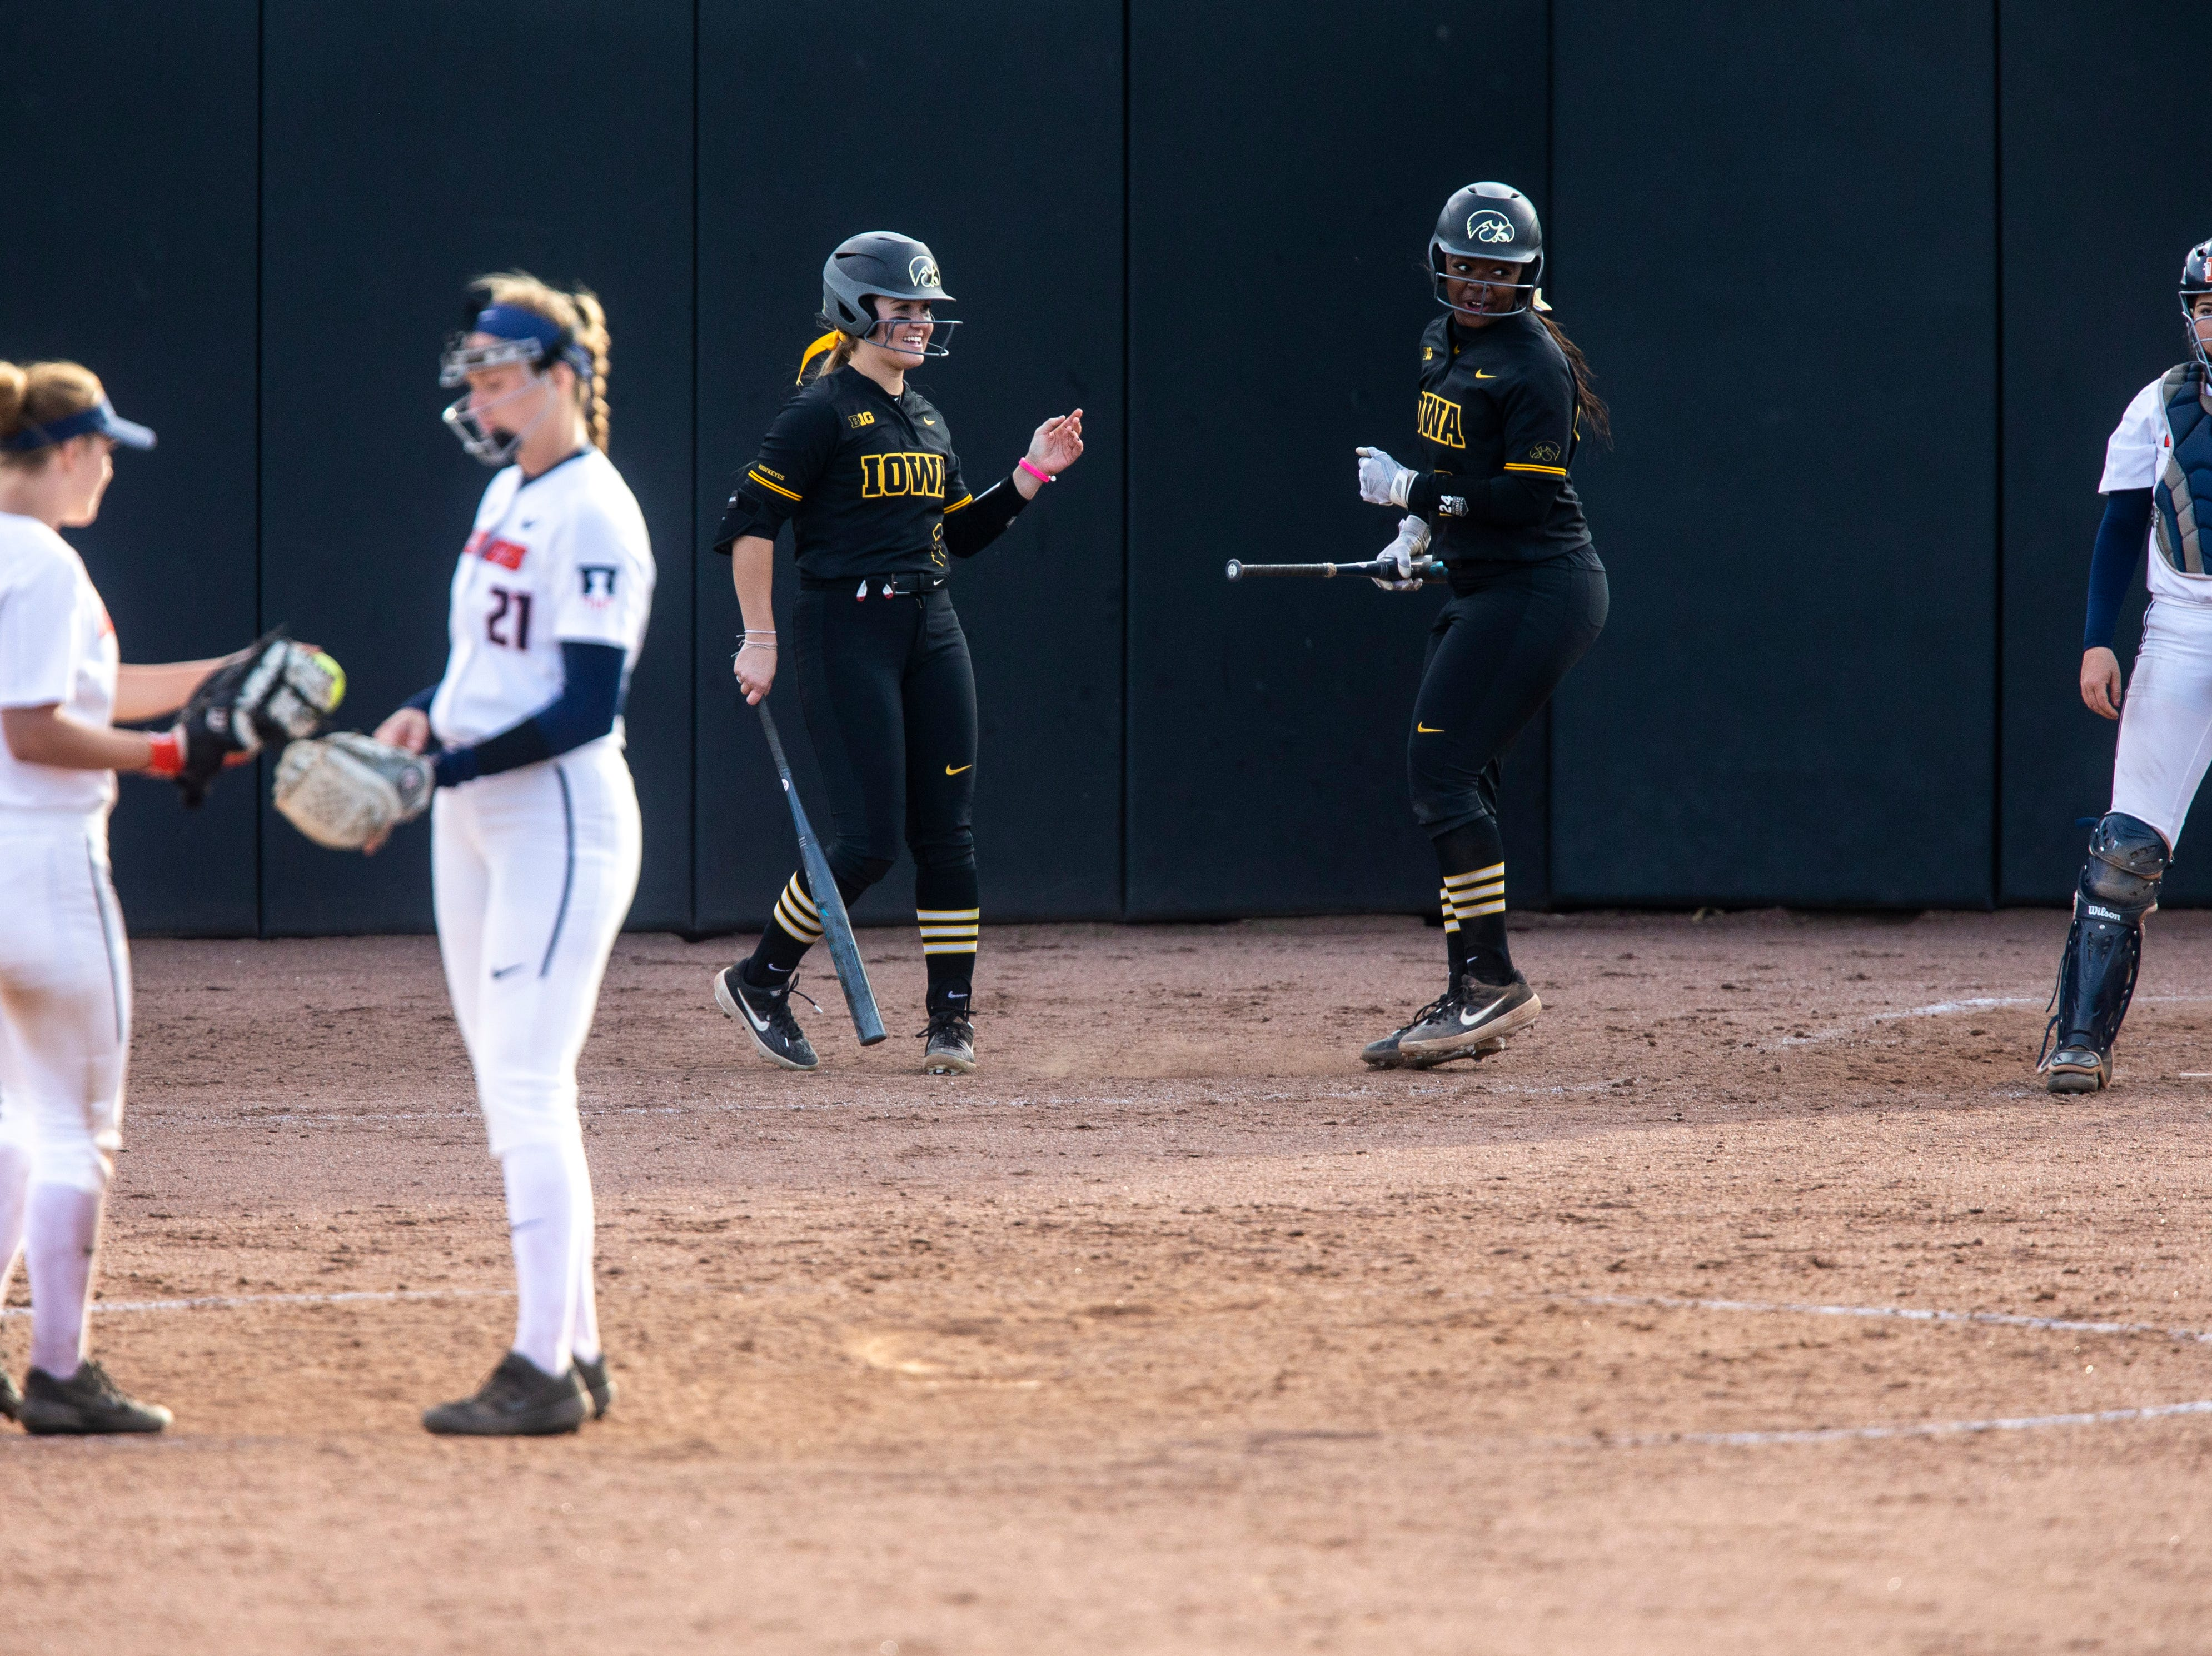 Iowa's DoniRae Mayhew (24) celebrates after getting a run during a NCAA Big Ten Conference softball game on Saturday, April 13, 2019, at Bob Pearl Field in Coralville, Iowa.